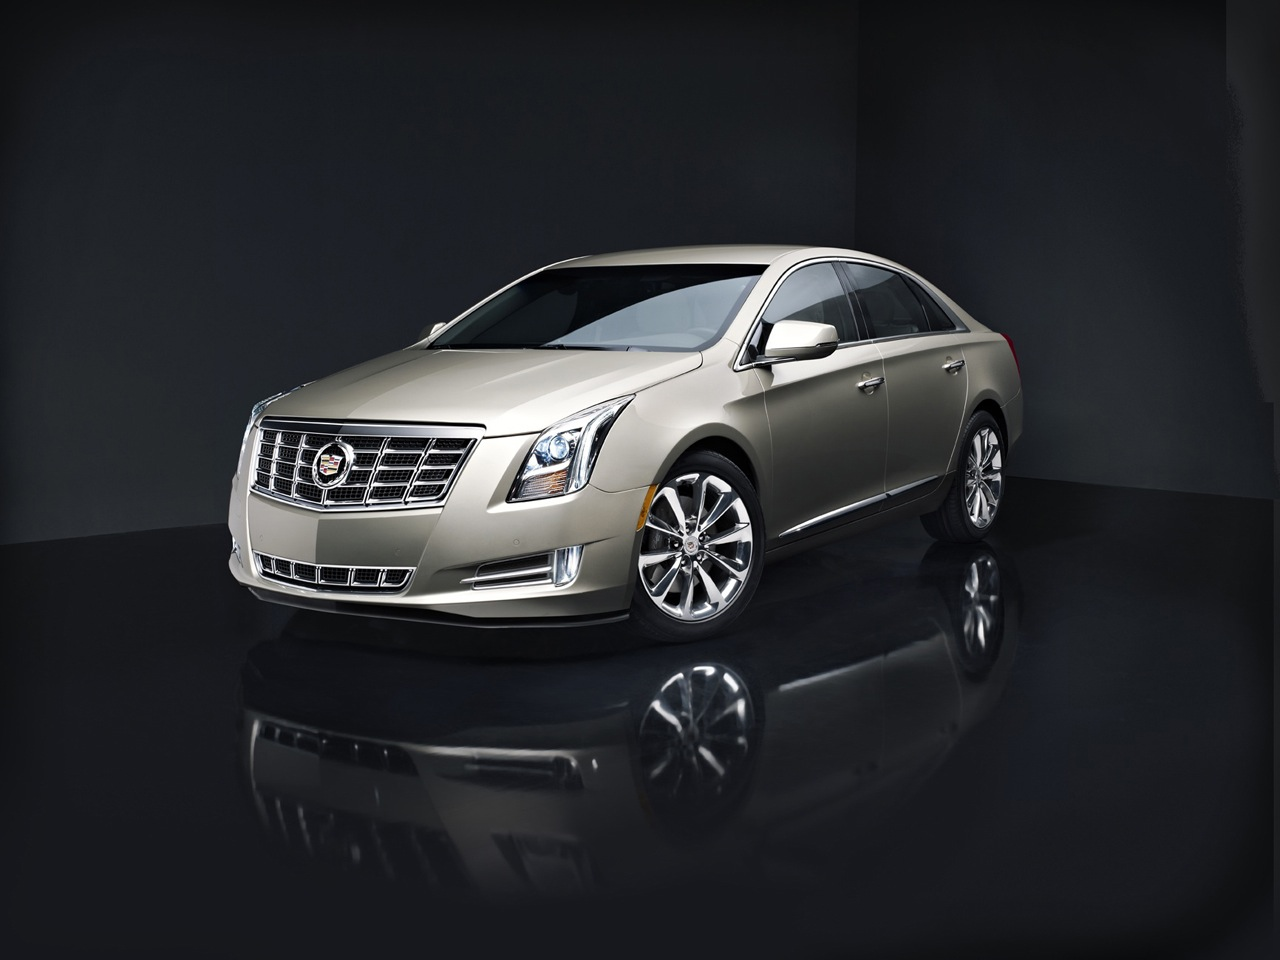 2014 cadillac xts twin turbo v6. Cars Review. Best American Auto & Cars Review